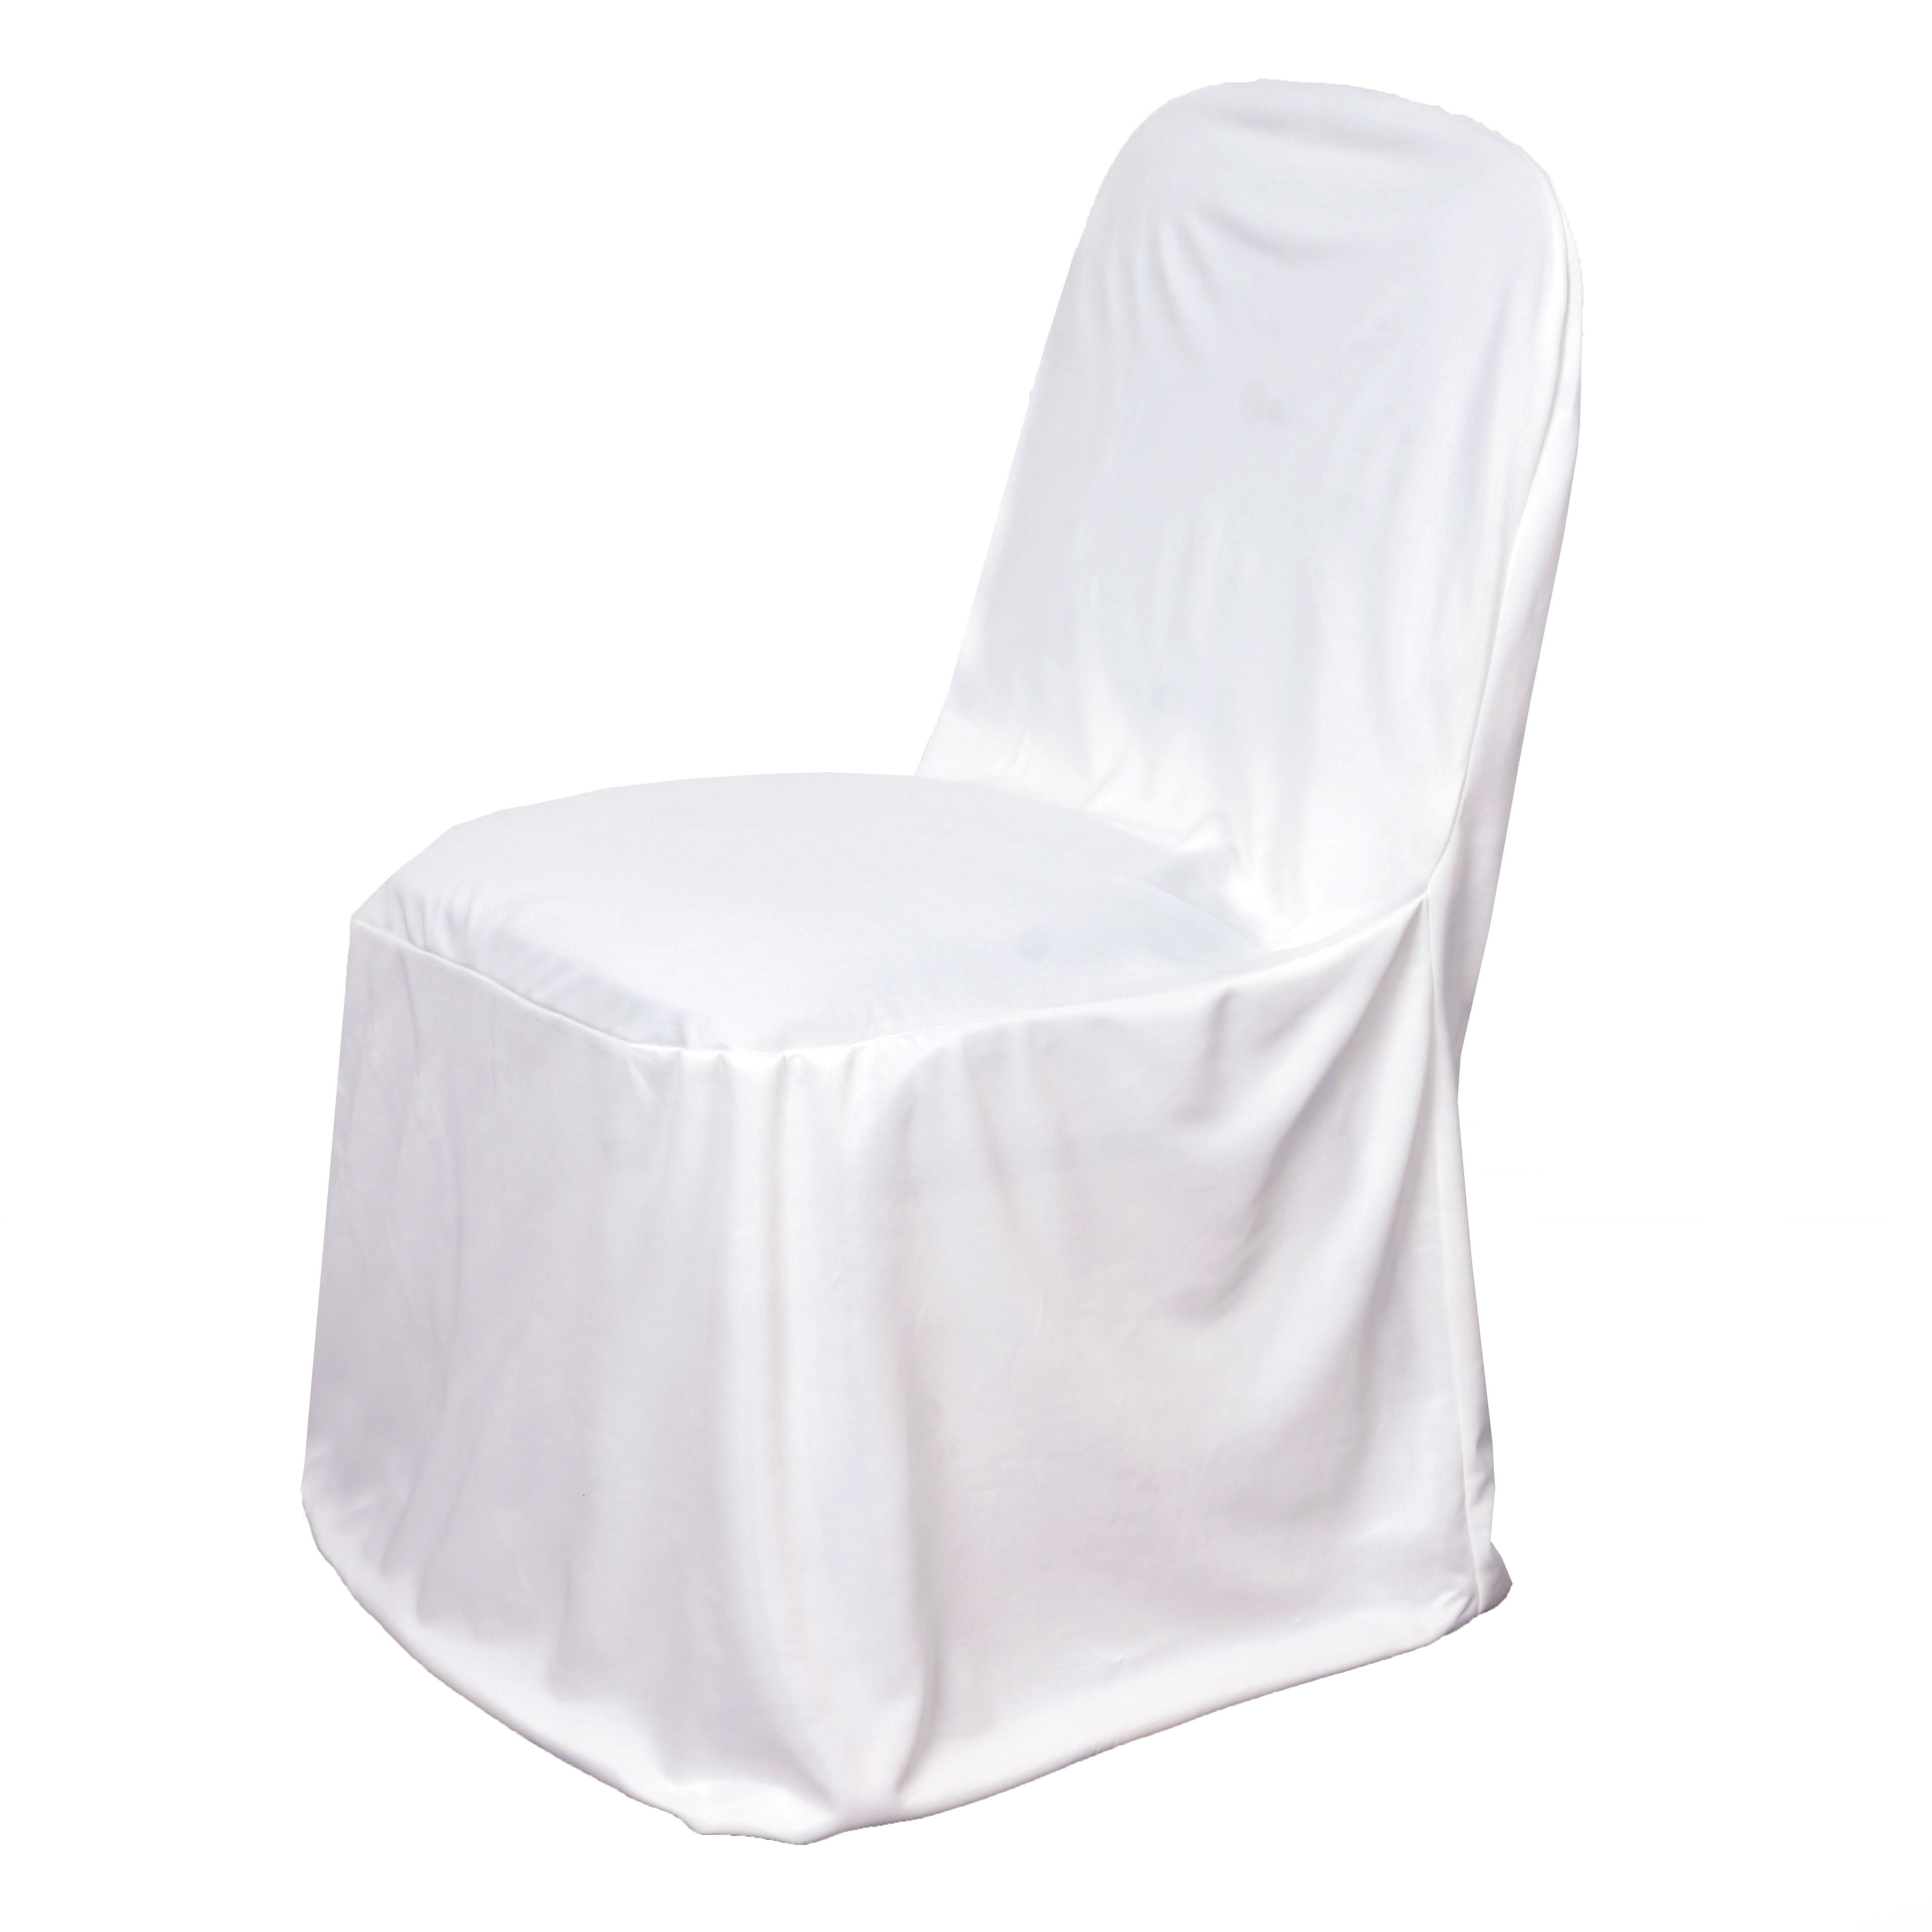 ebay ivory chair covers office elbow pads stretch scuba wedding party supplies